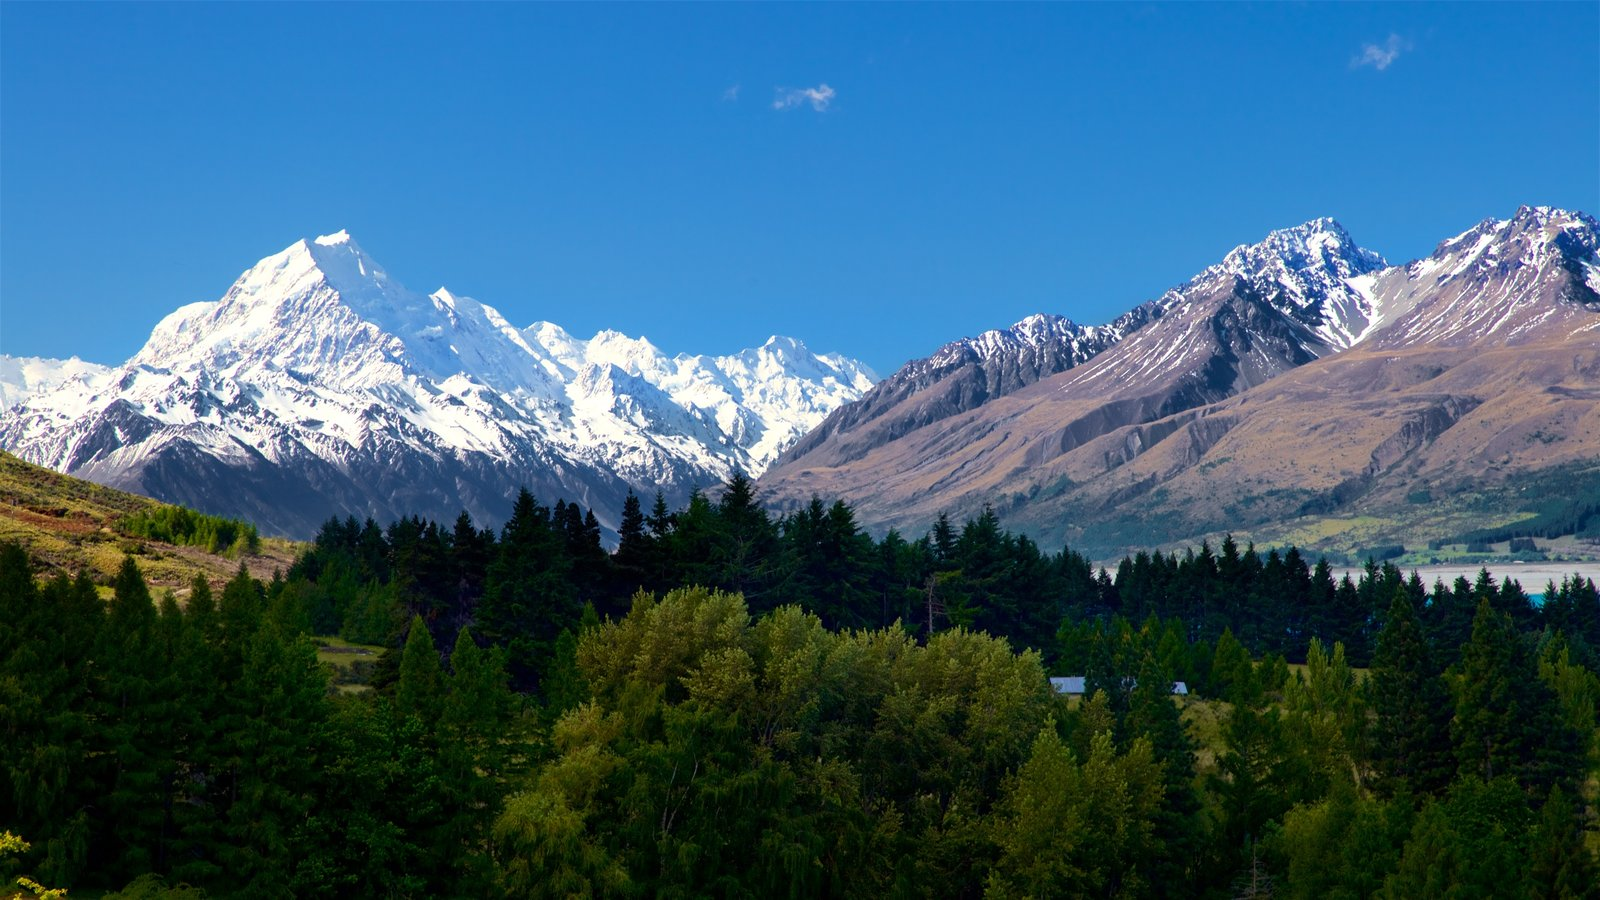 Mount Cook National Park showing landscape views, snow and tranquil scenes